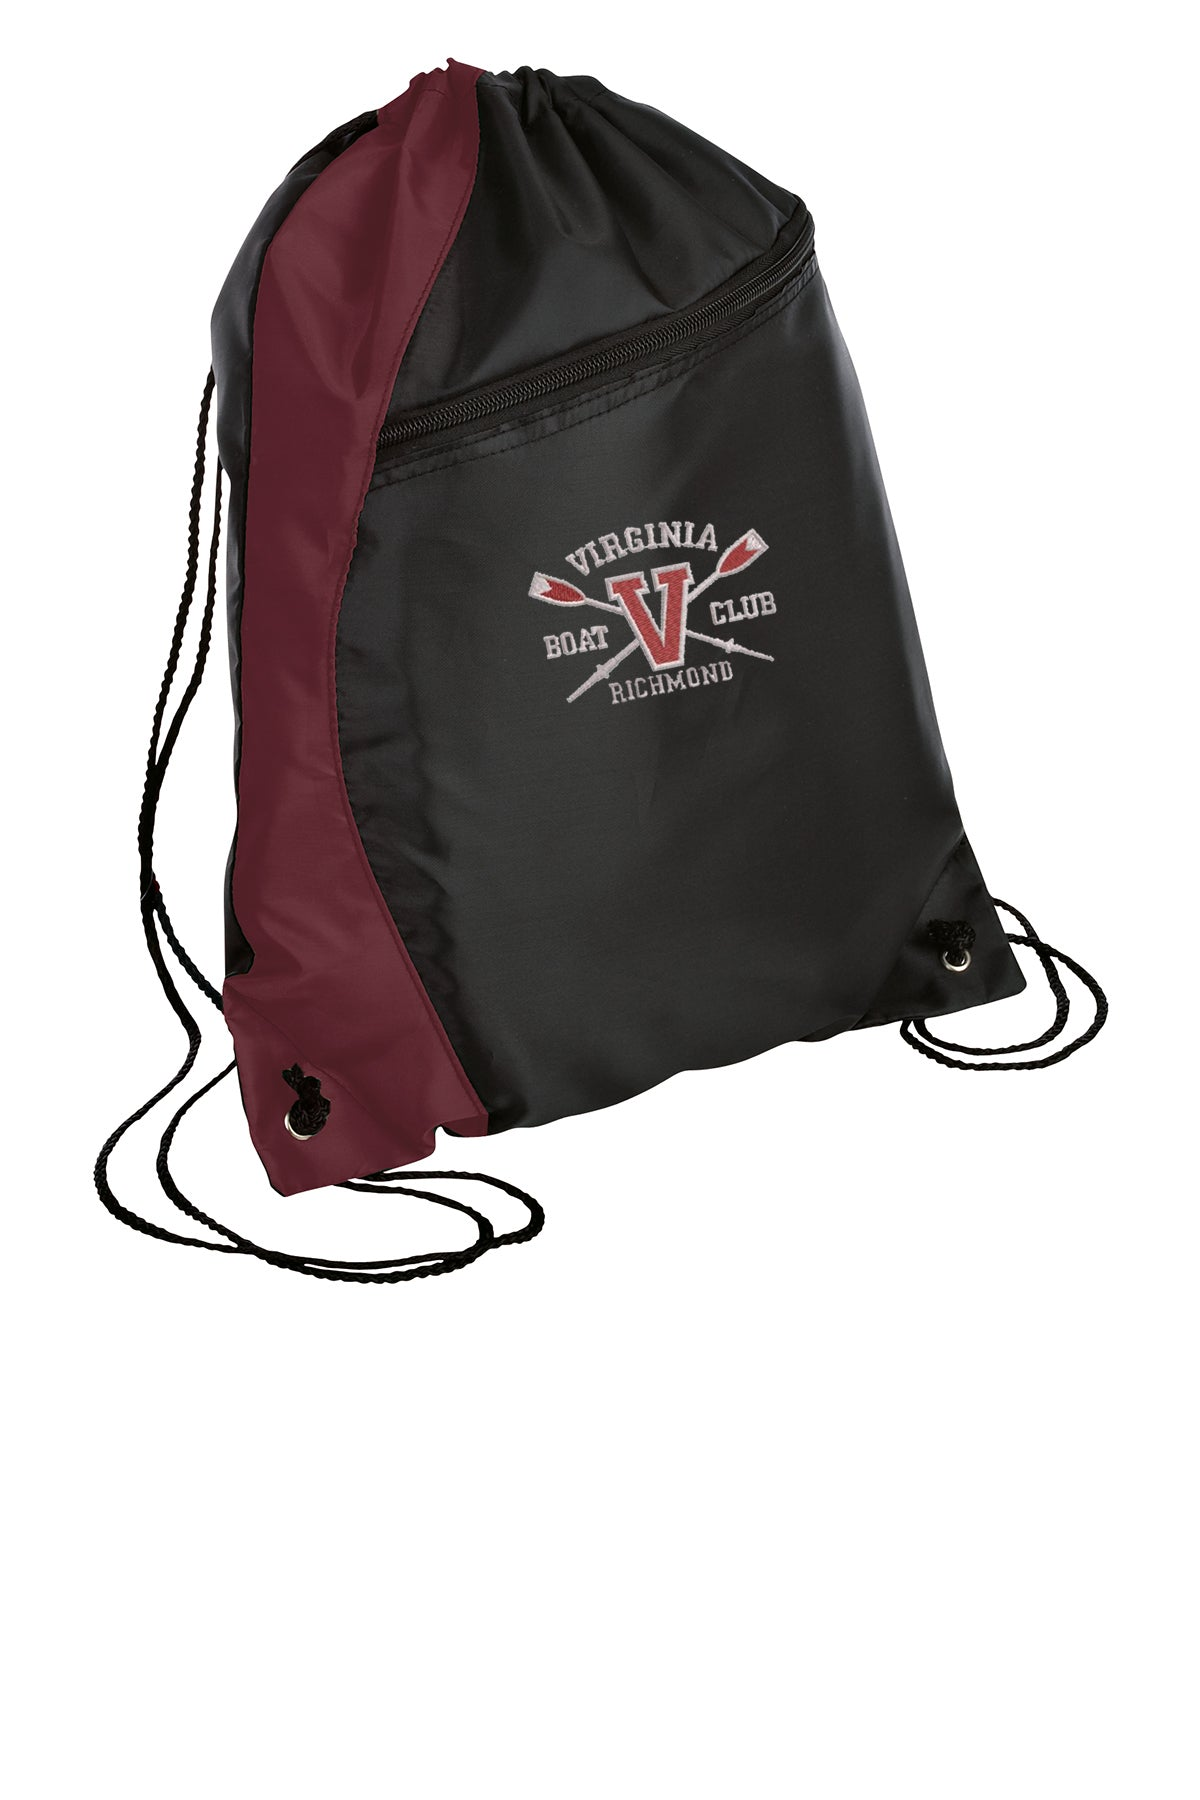 Virginia Boat Club Slouch Packs